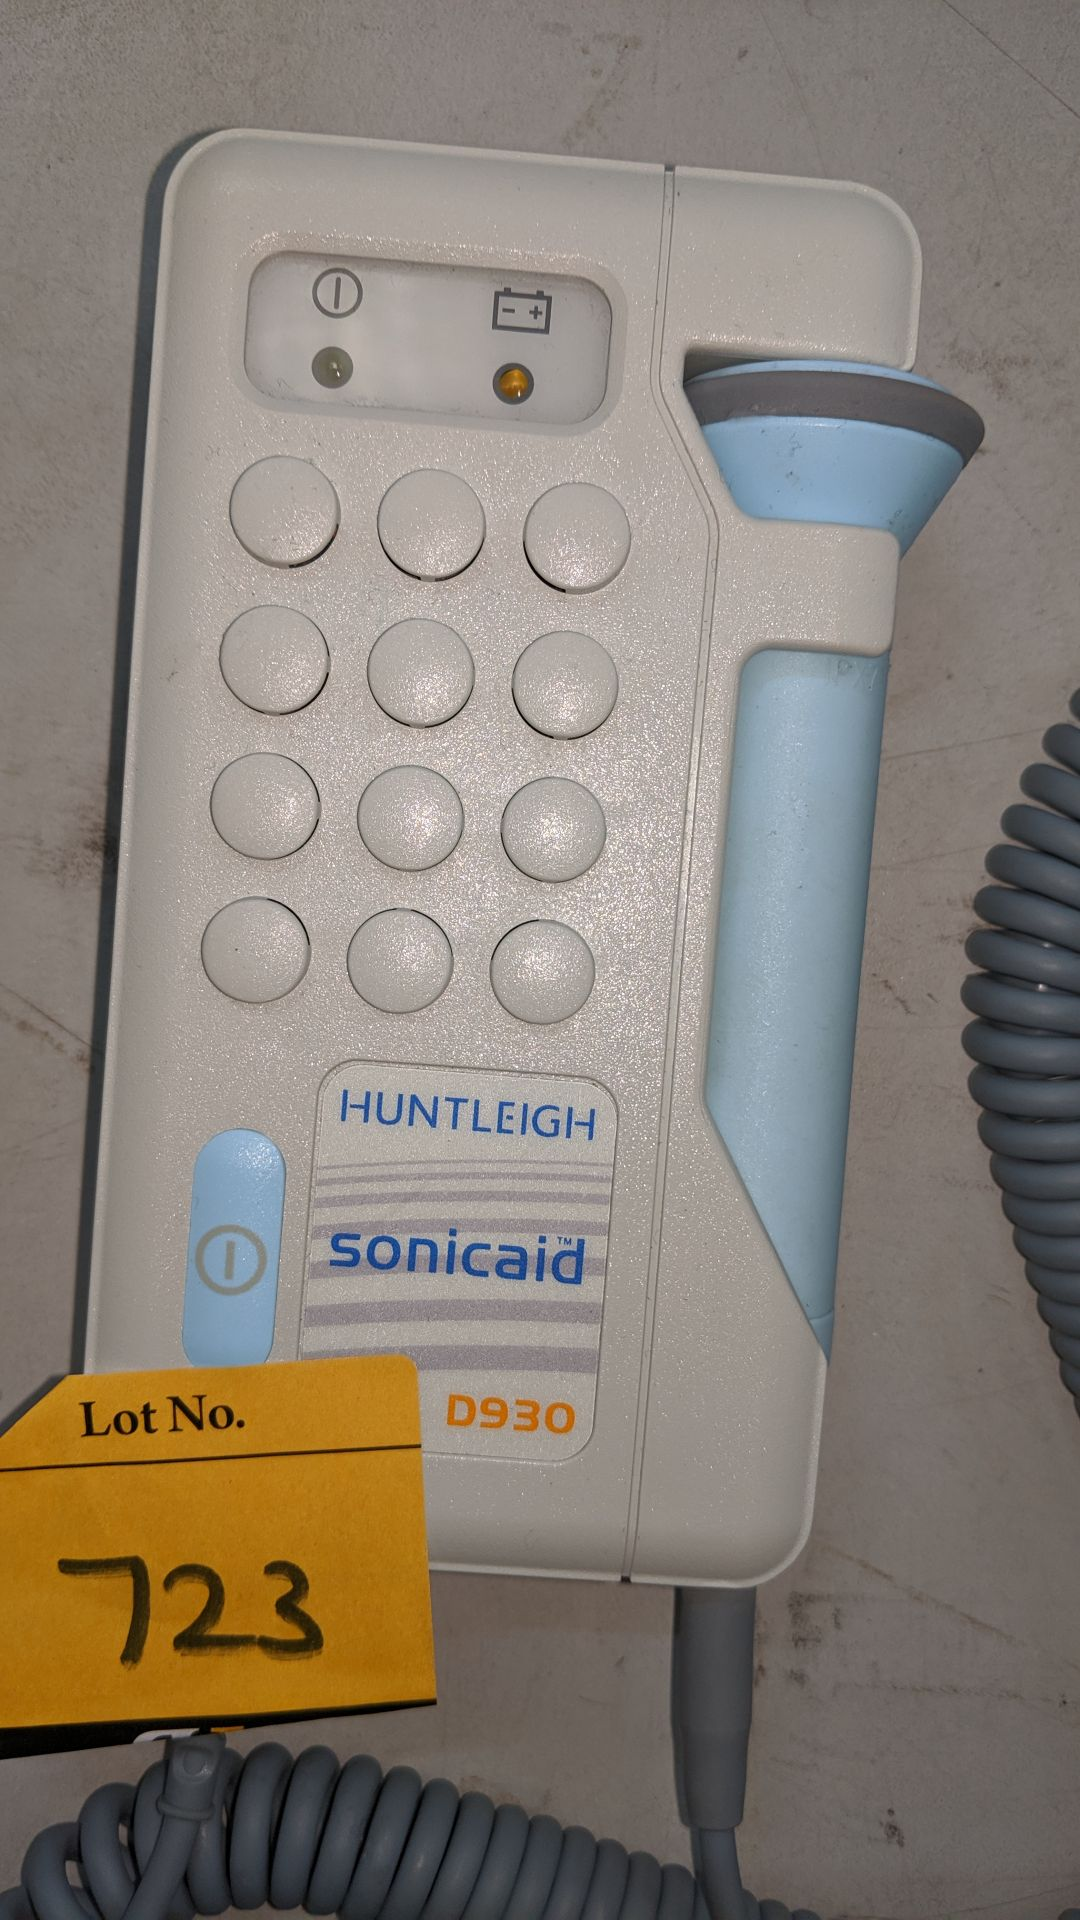 Lot 723 - Huntleigh Sonicaid D930 Fetal Doppler tester. This is one of a large number of lots used/owned by